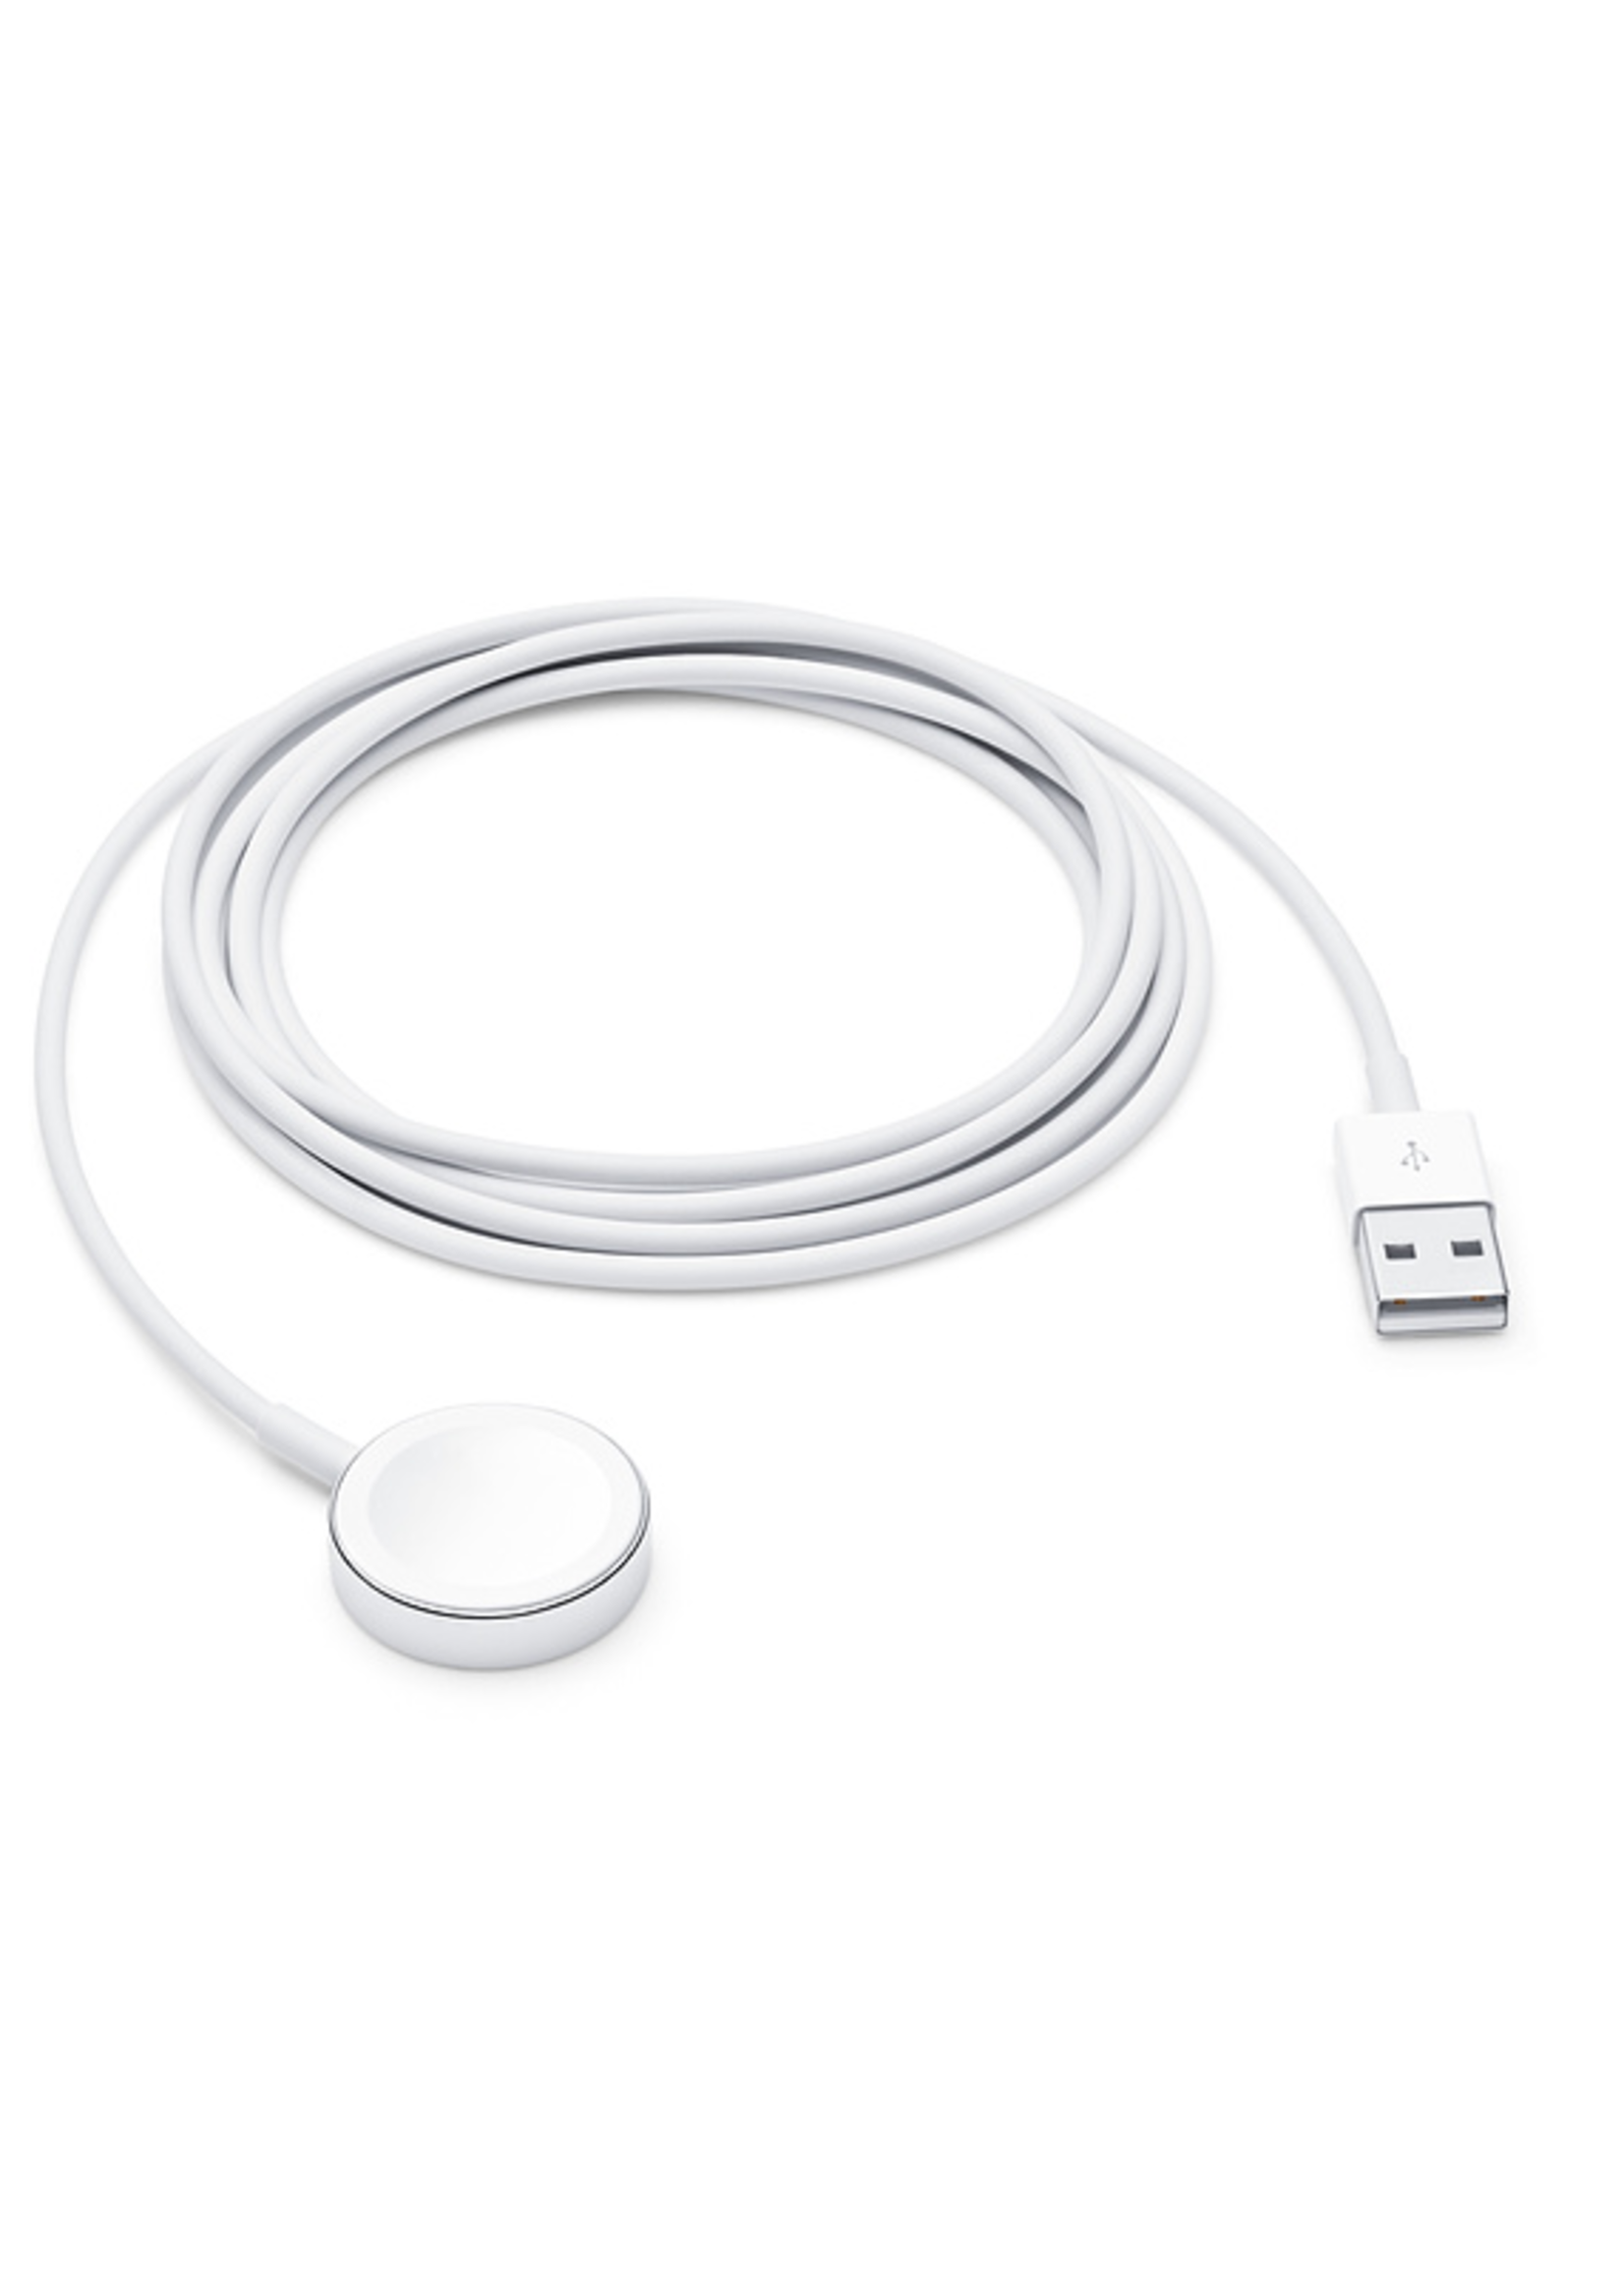 Apple Watch Magnetic Charging Cable (2m) - OLD